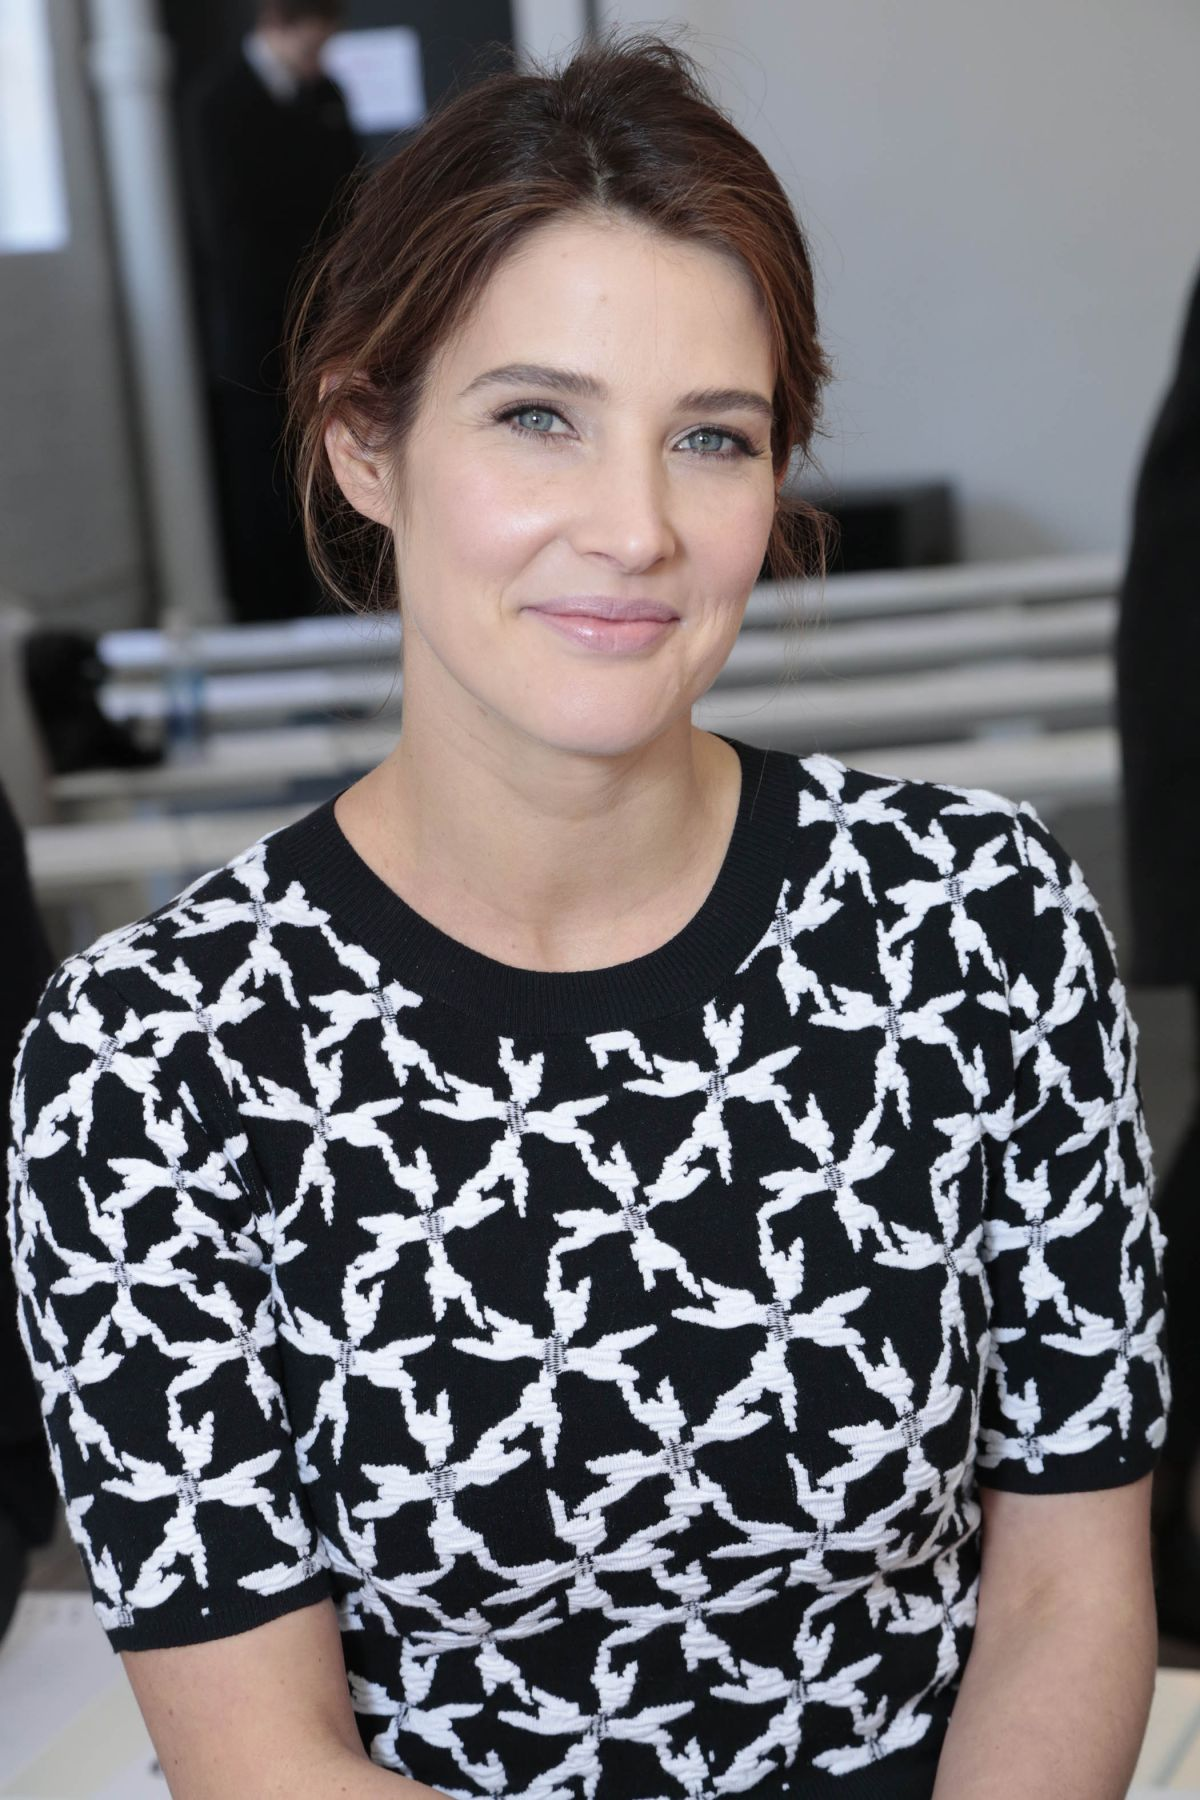 COBIE SMULDERS at Tanya Taylor Fashion Show in New York